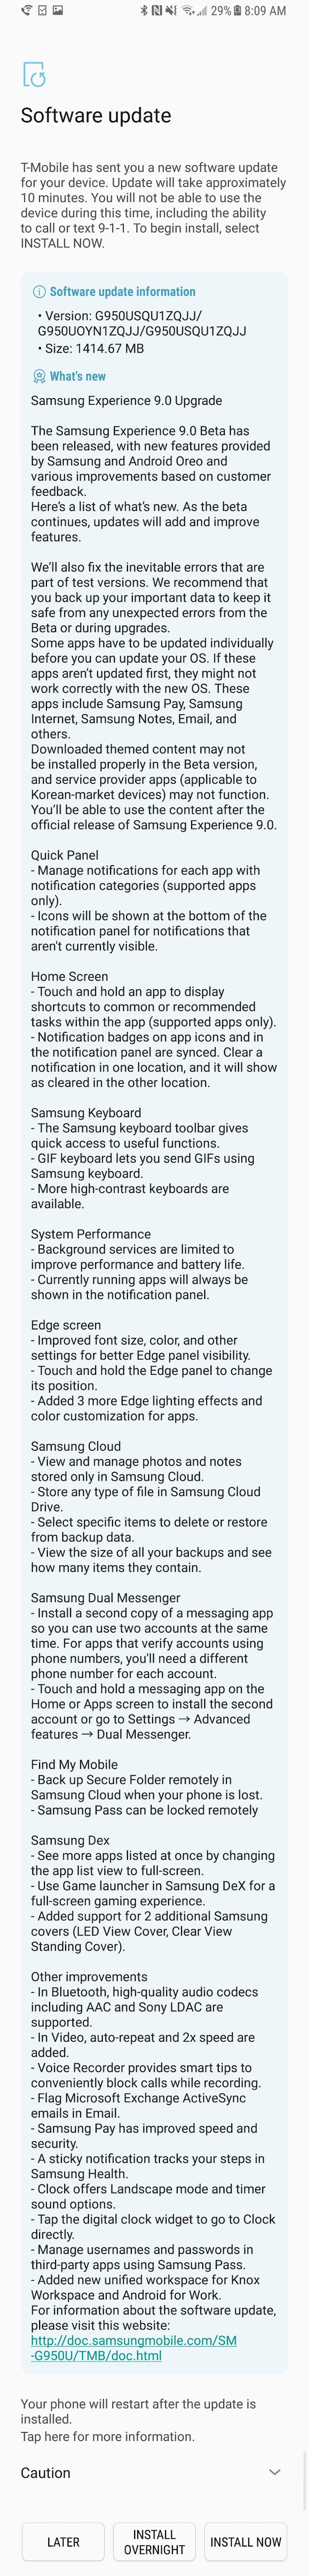 Samsung Galaxy S8 Android Oreo beta changelog